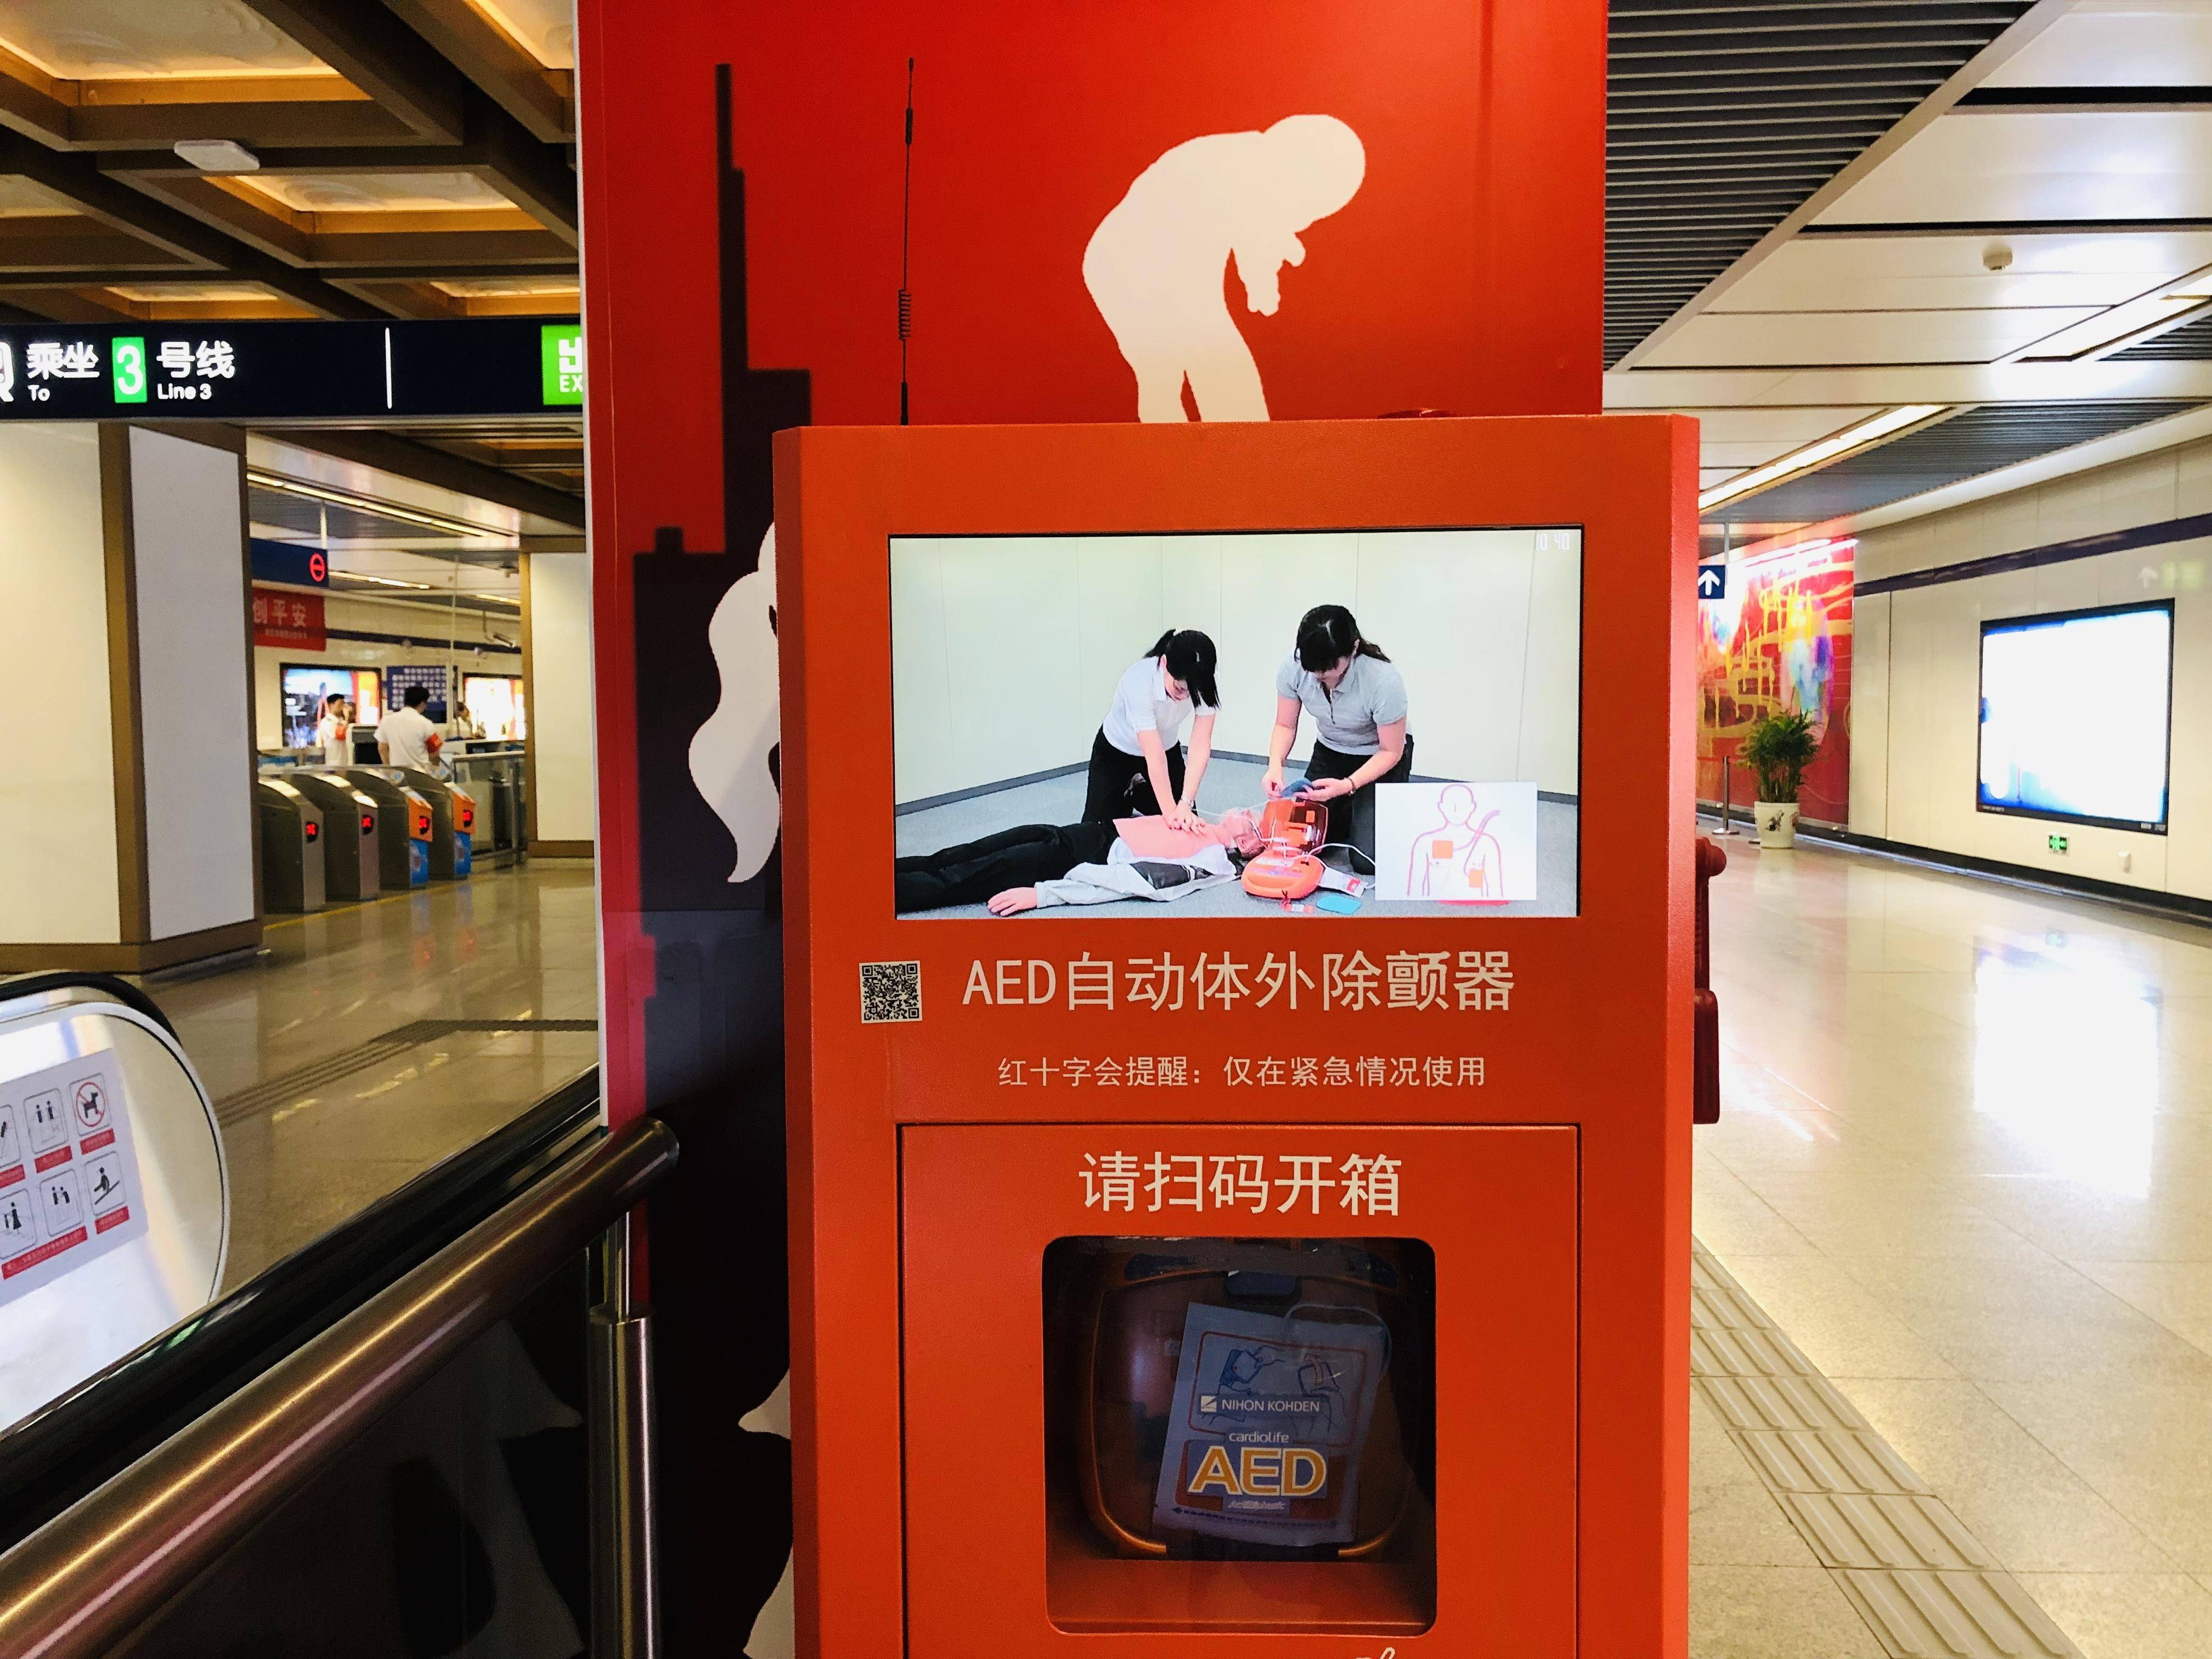 E China's Nanjing City to place 1,000 AEDs in public spaces